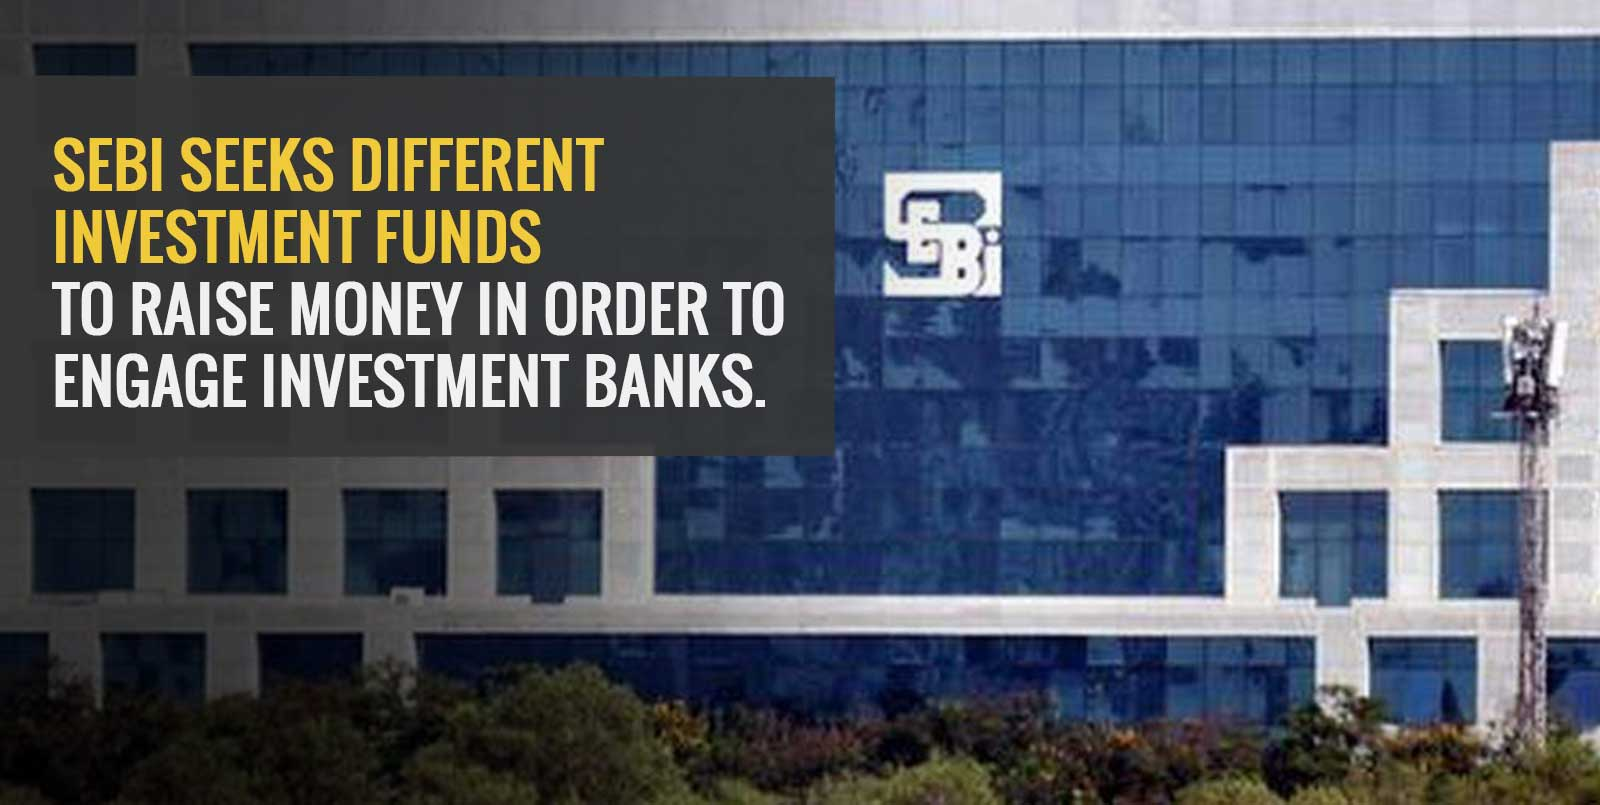 SEBI seeks different investment funds to raise money in order to engage investment banks